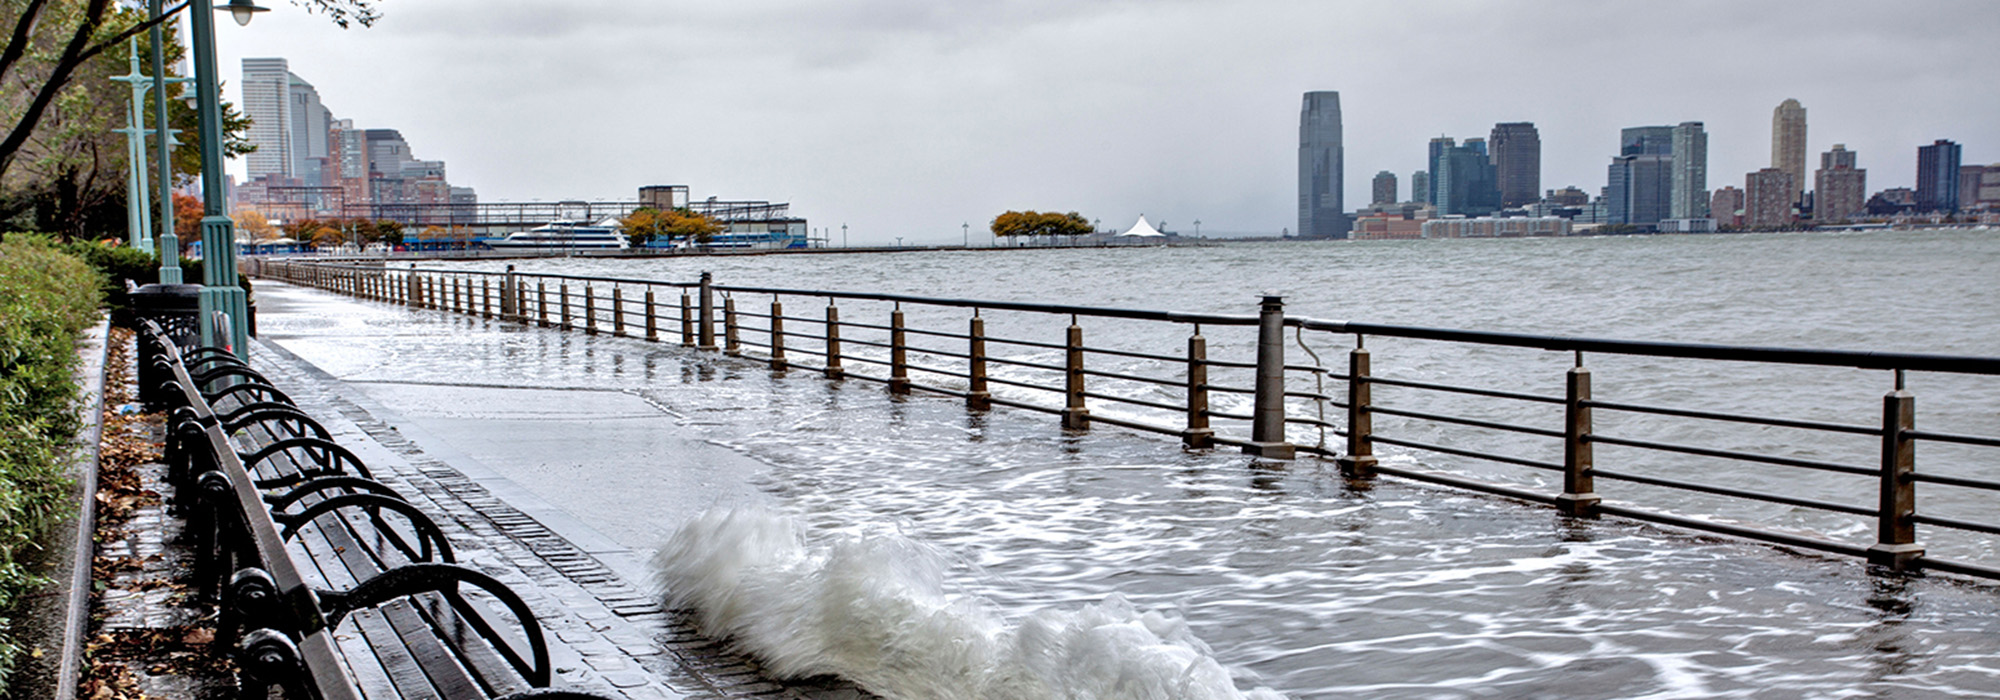 CourageousByDesign-www.carbonbrief.orgflooding-battery-park-ny_Hero.jpg